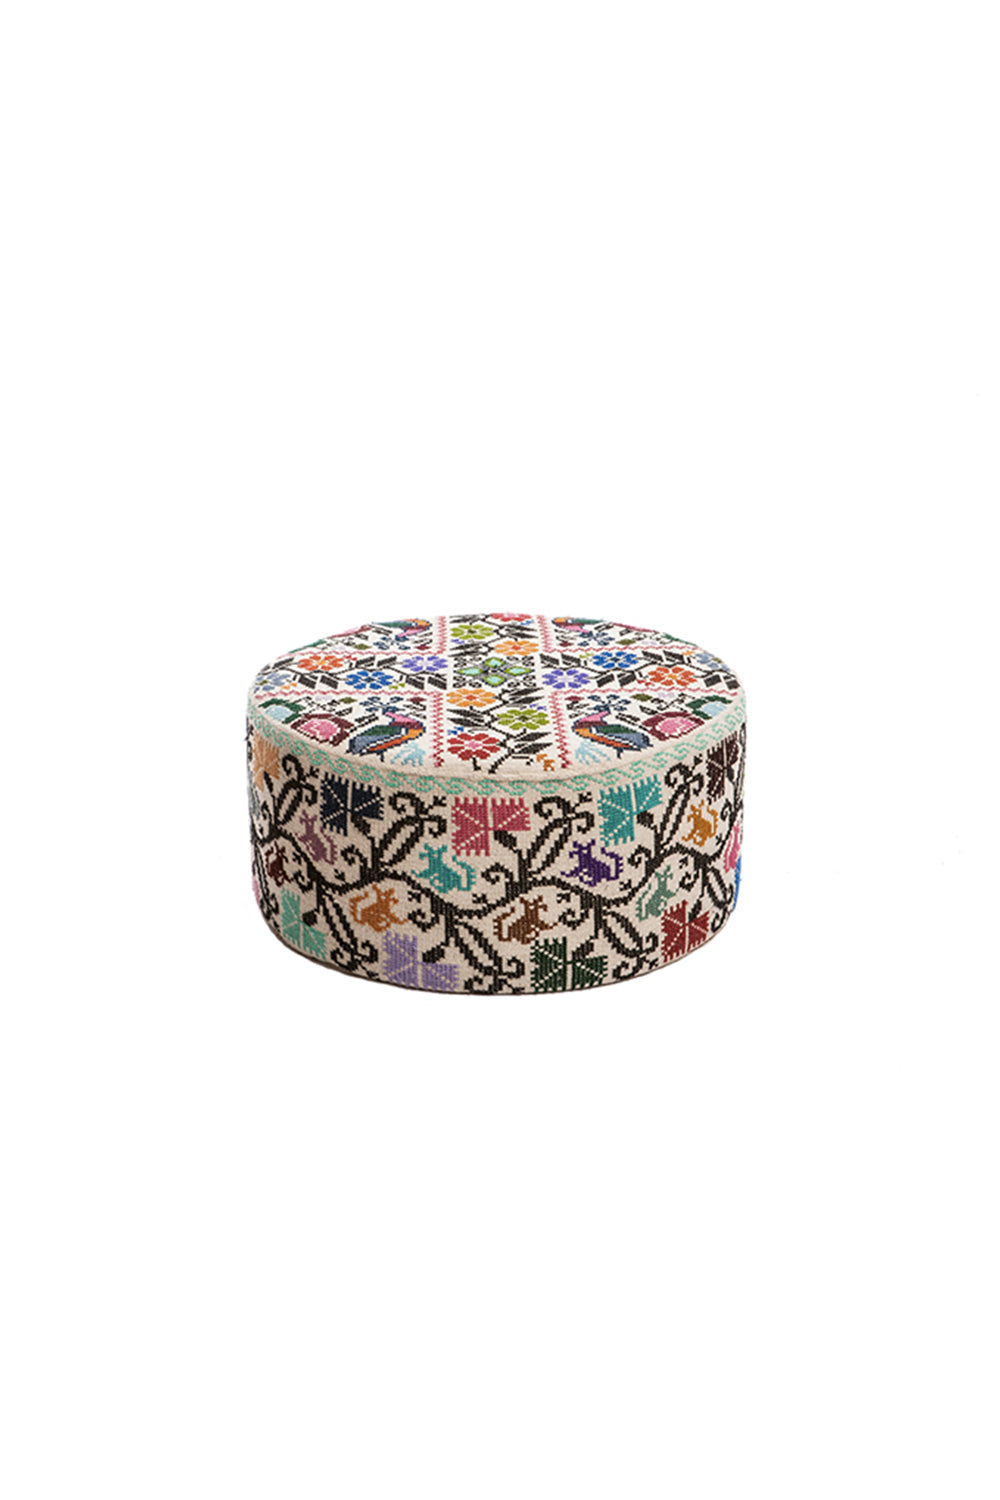 Carolina K Small Embroidered Ottoman Cream/Multi